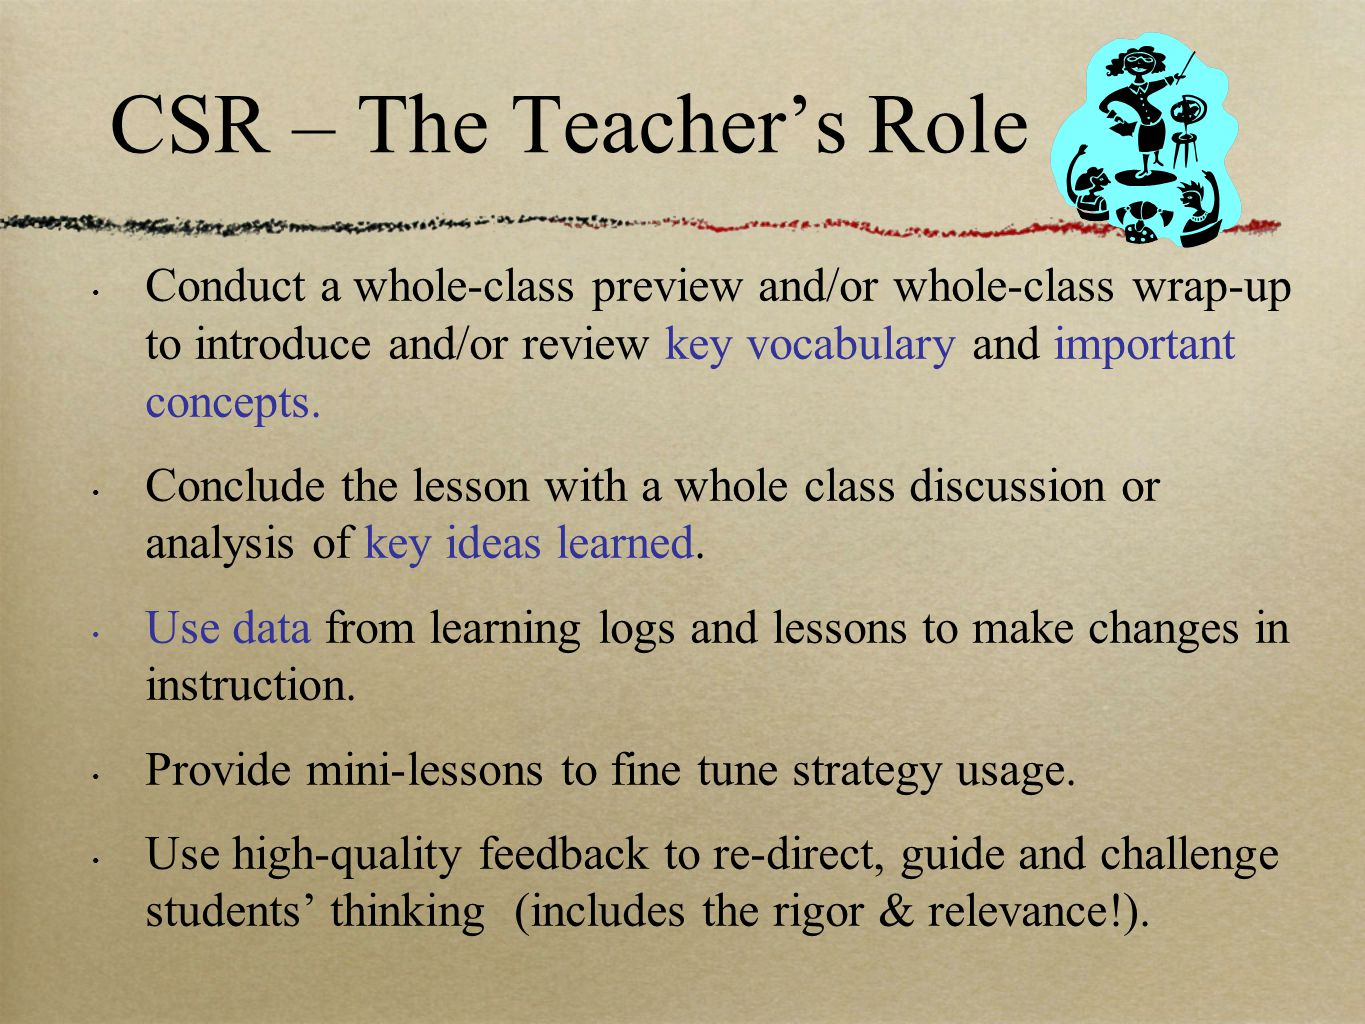 CSR – The Teacher's Role Conduct a whole-class preview and/or whole-class wrap-up to introduce and/or review key vocabulary and important concepts.